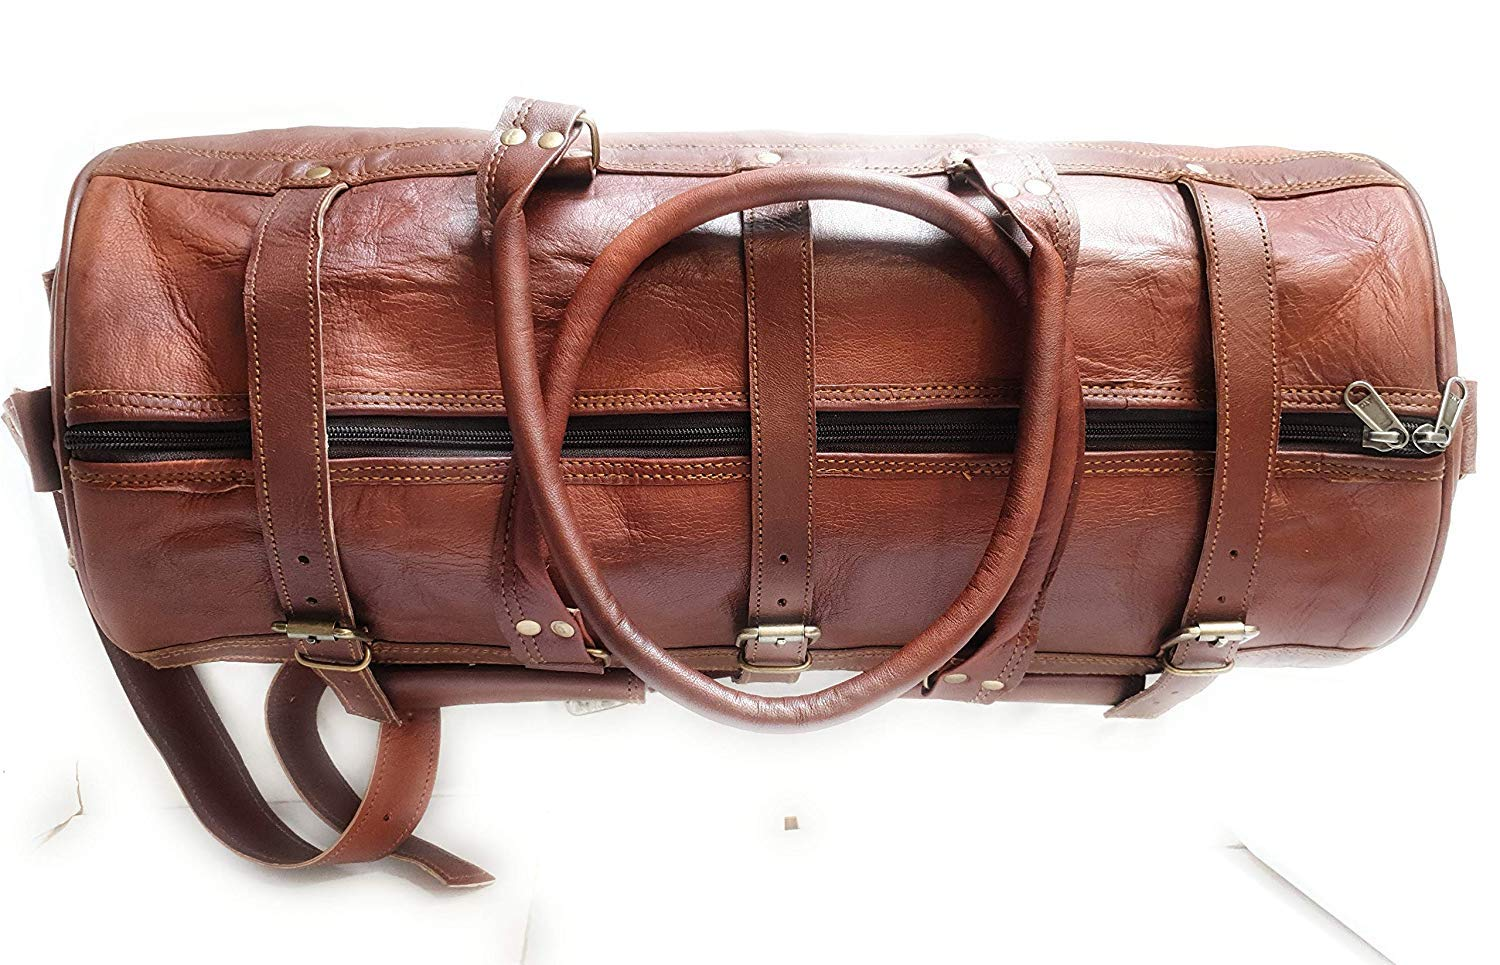 Dark Brown Pranjals House Leather Duffel Bag for Travel